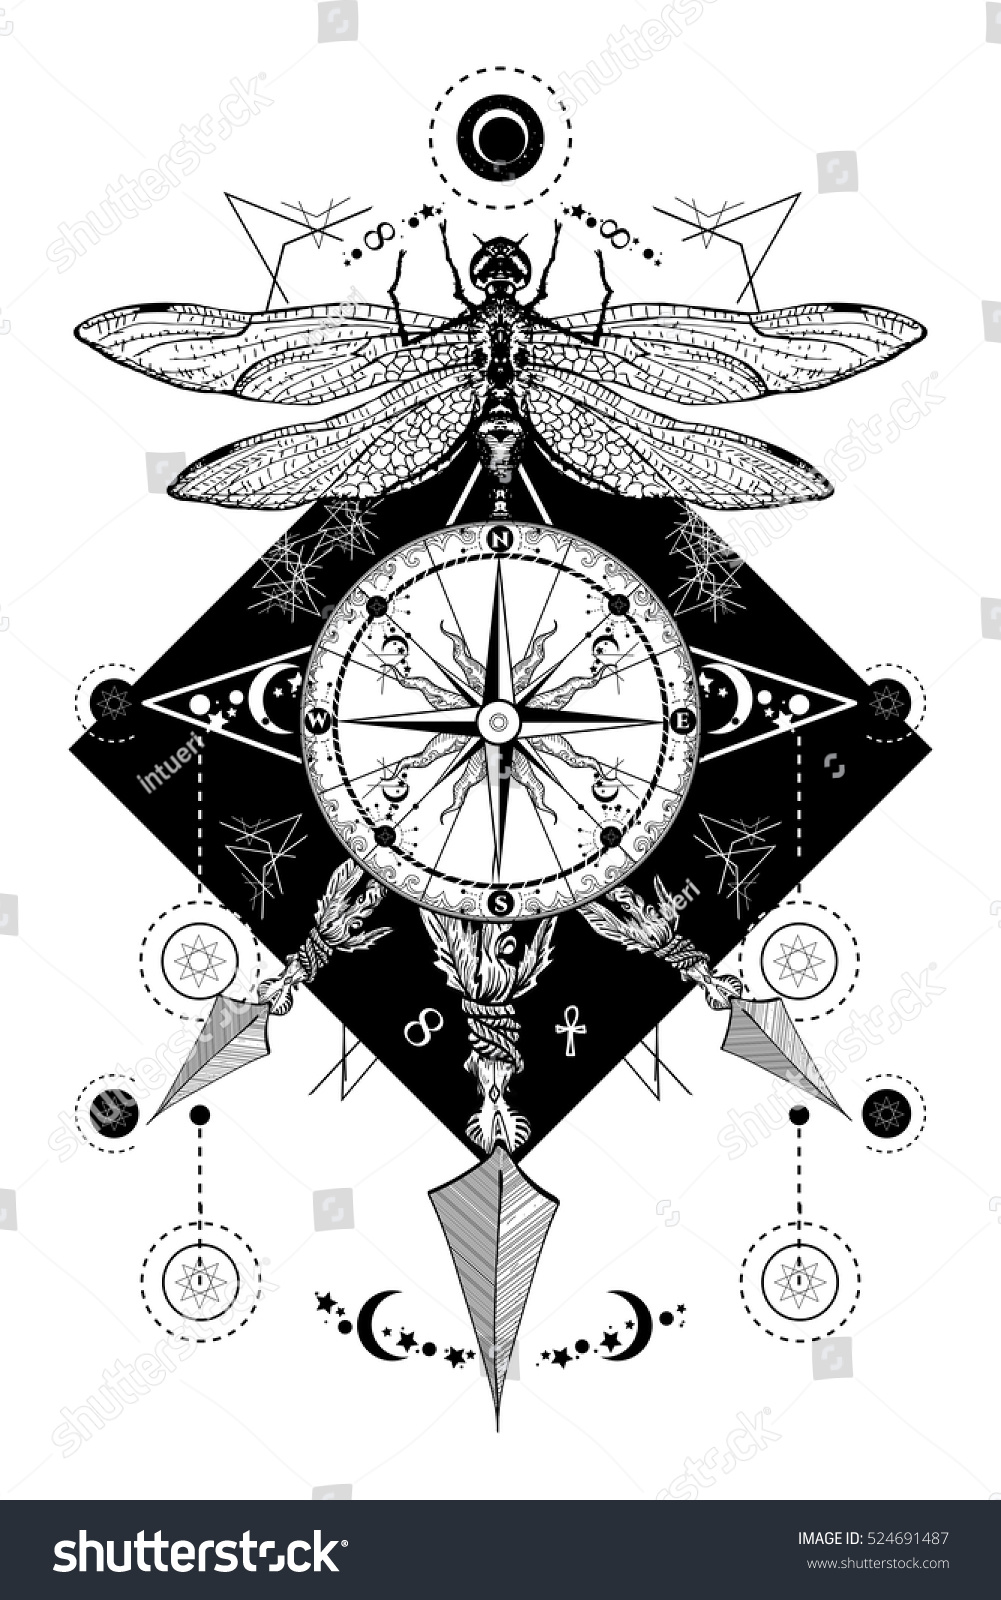 Dragonfly Compass Crossed Arrows Tattoo Mystical Stock Vector